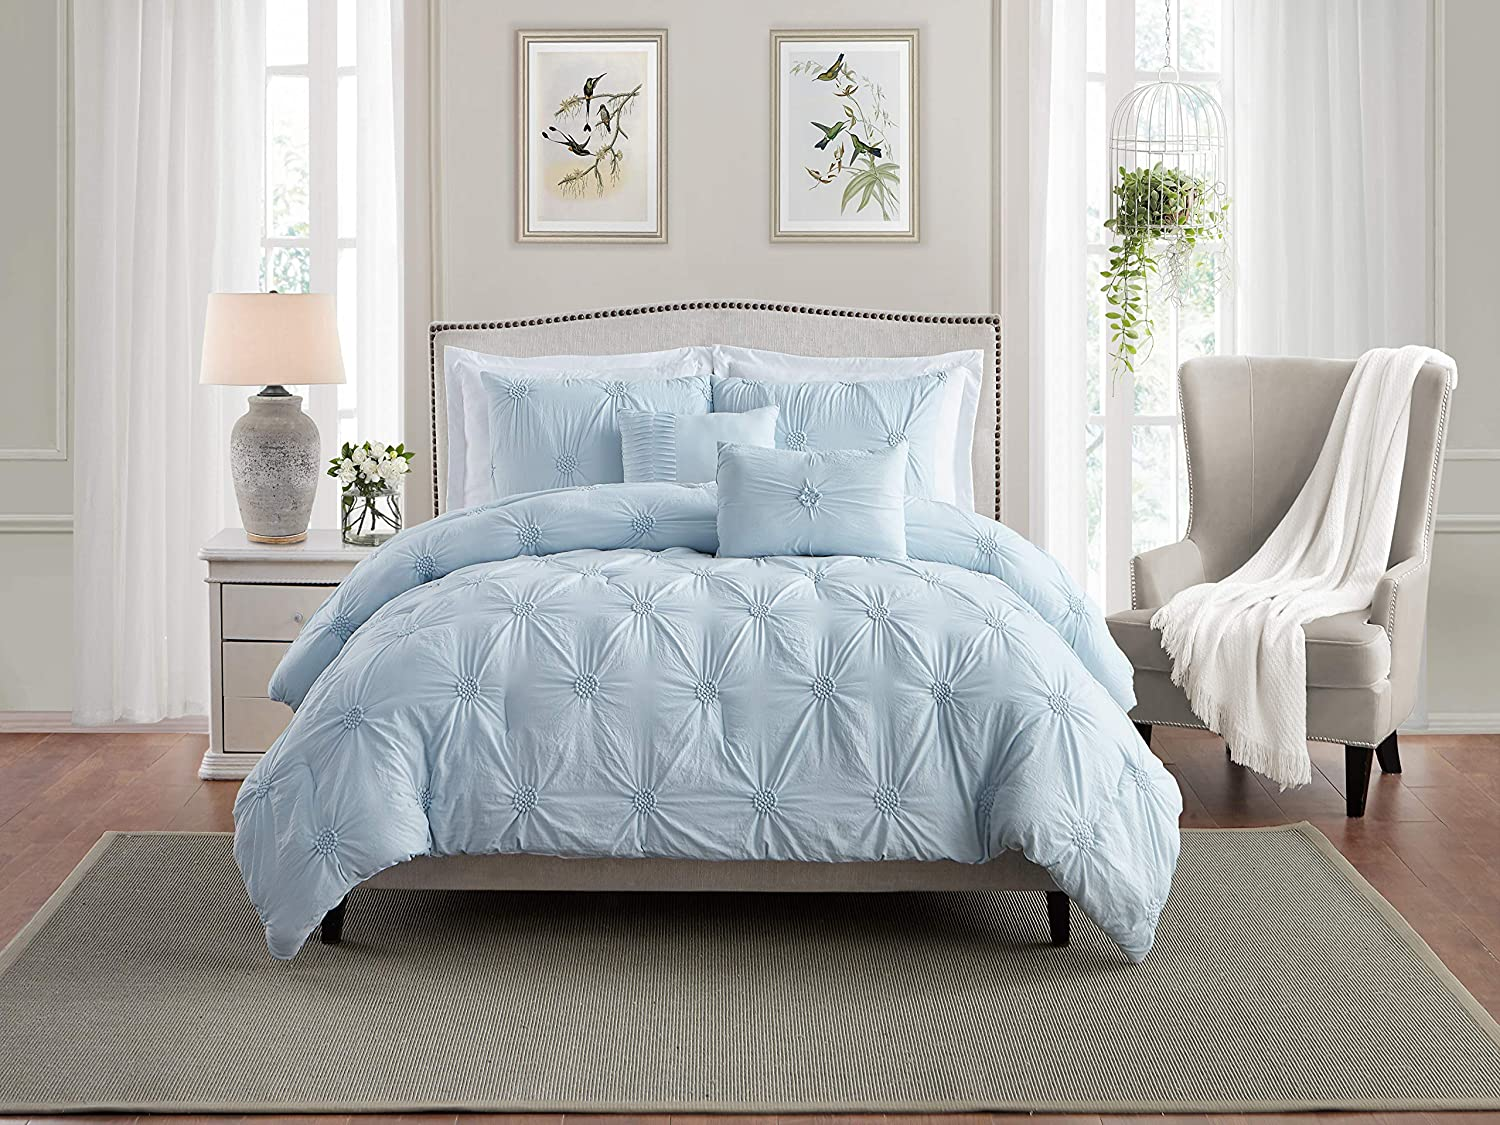 Images of Top 10 Bedding Sets and Bed Sheets in America 2021